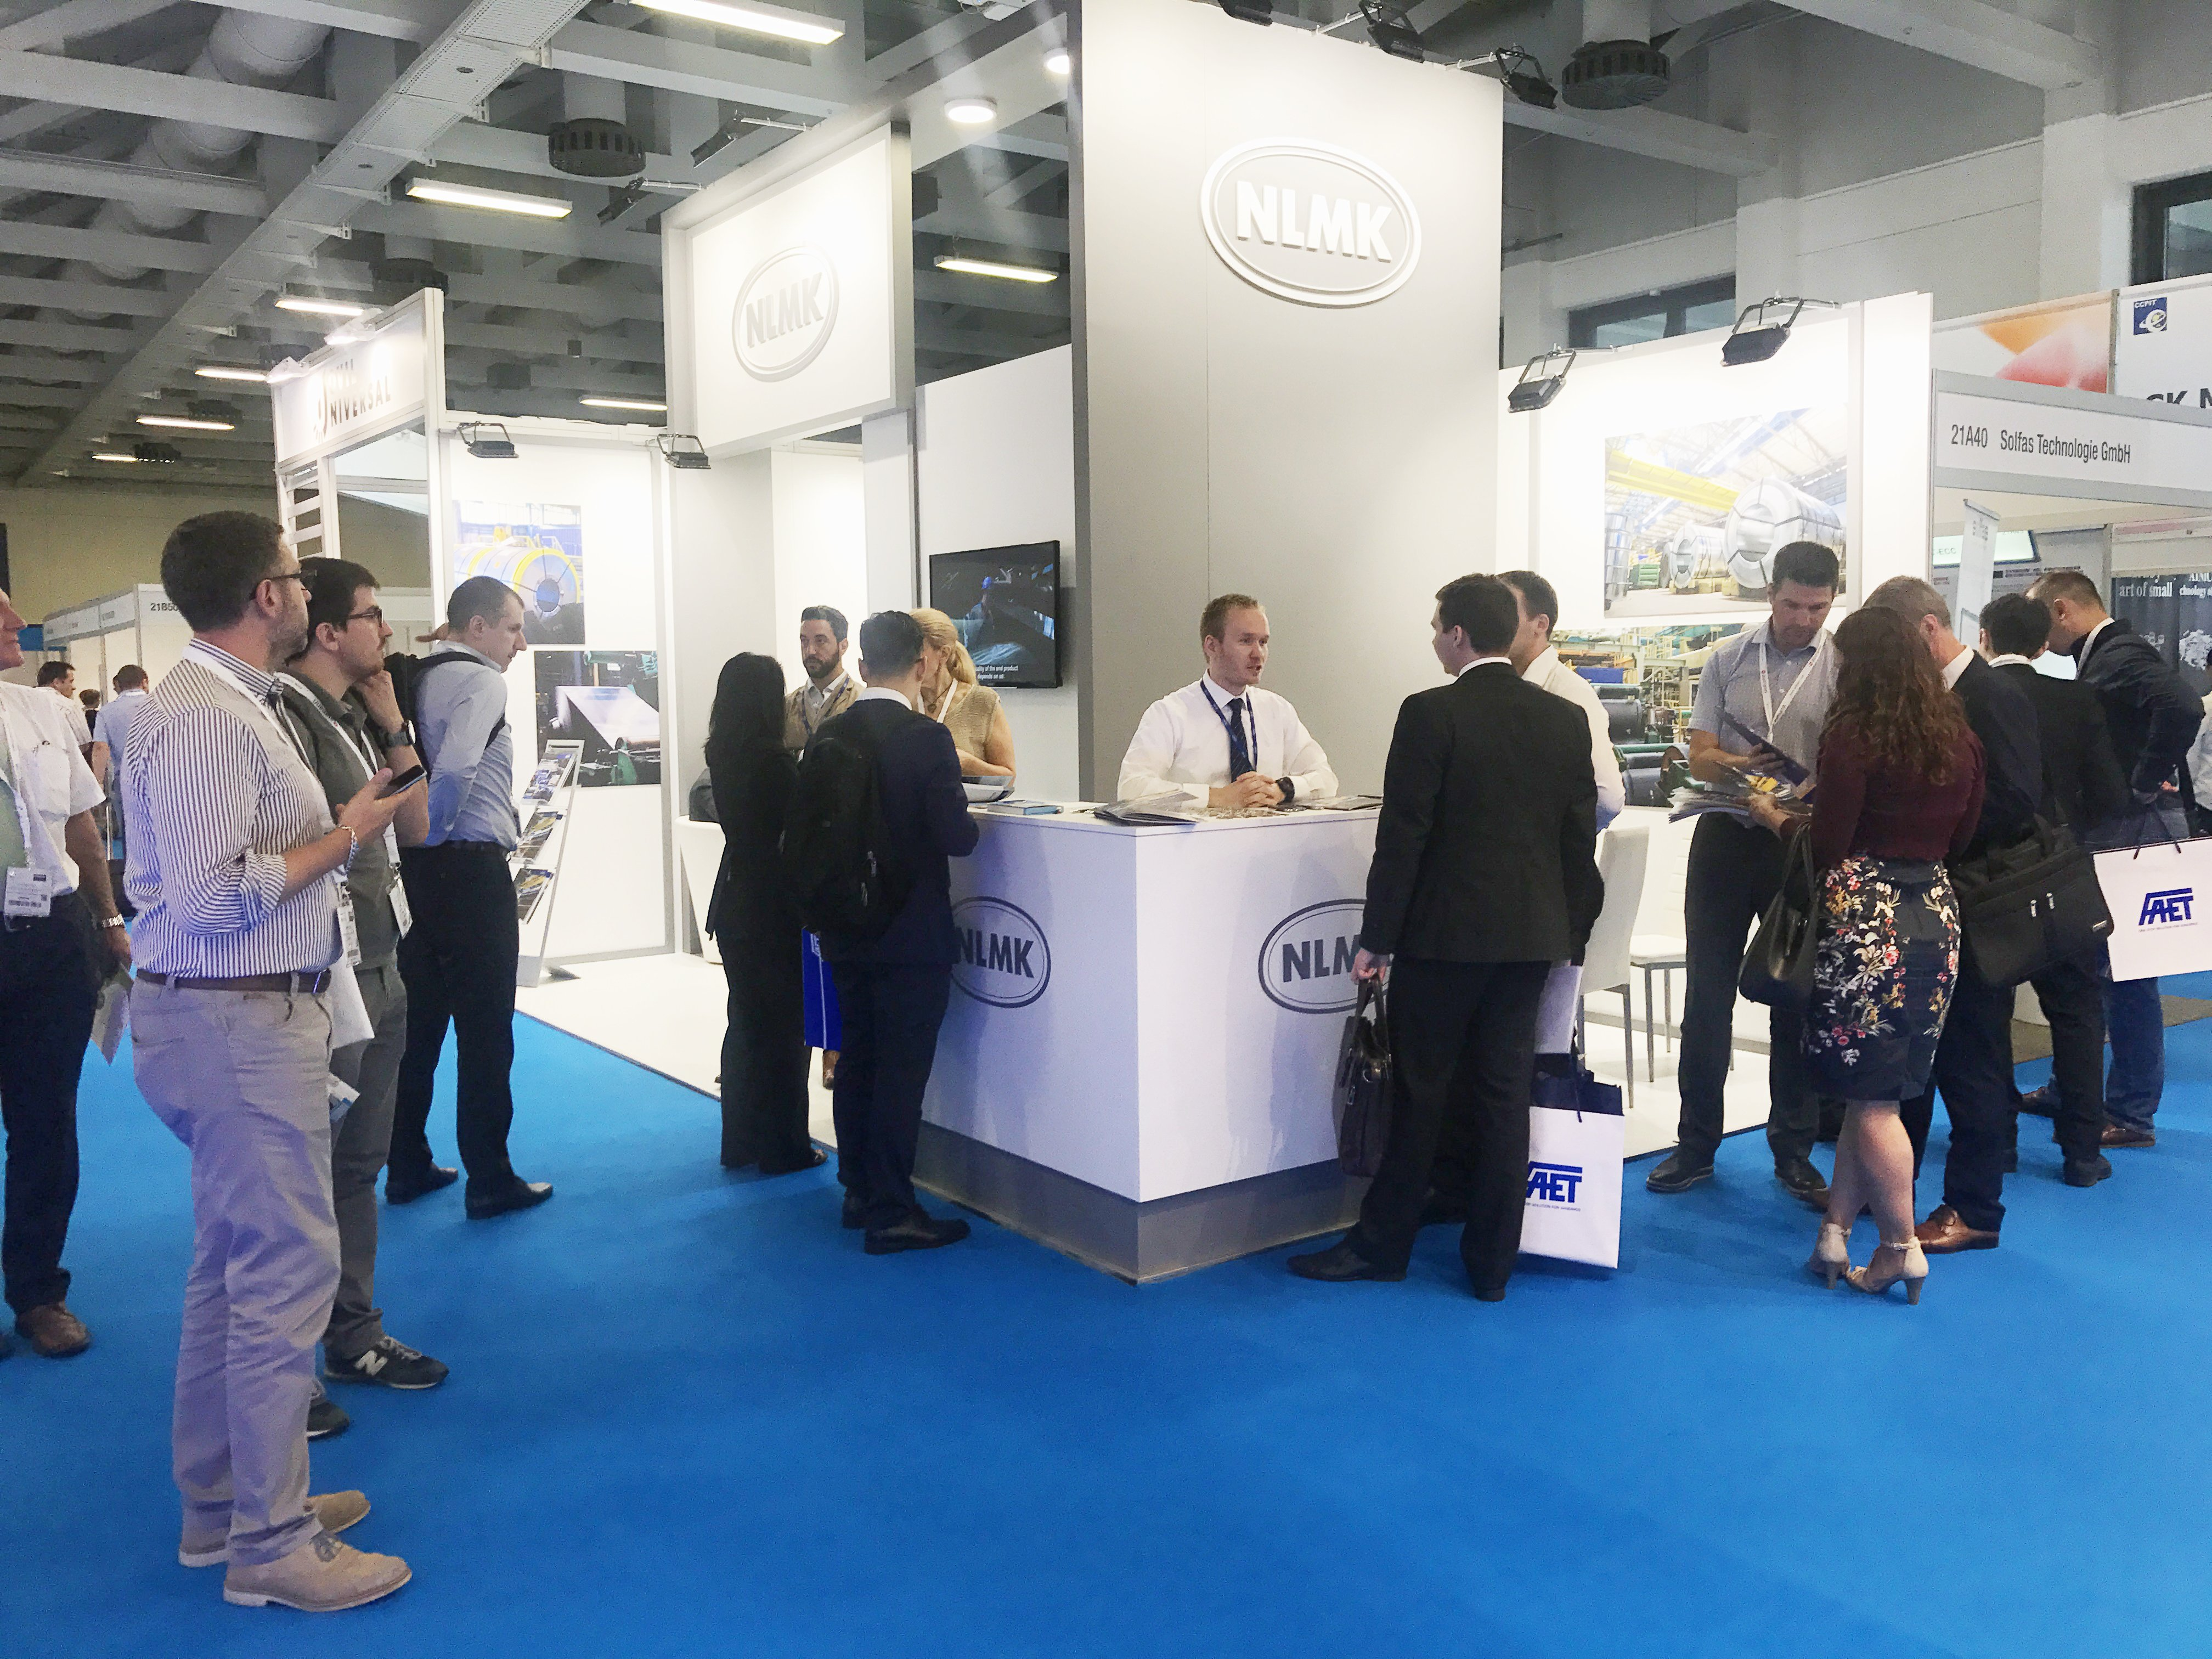 NLMK specialists at CWIEME 2018 Berlin International Trade Fair